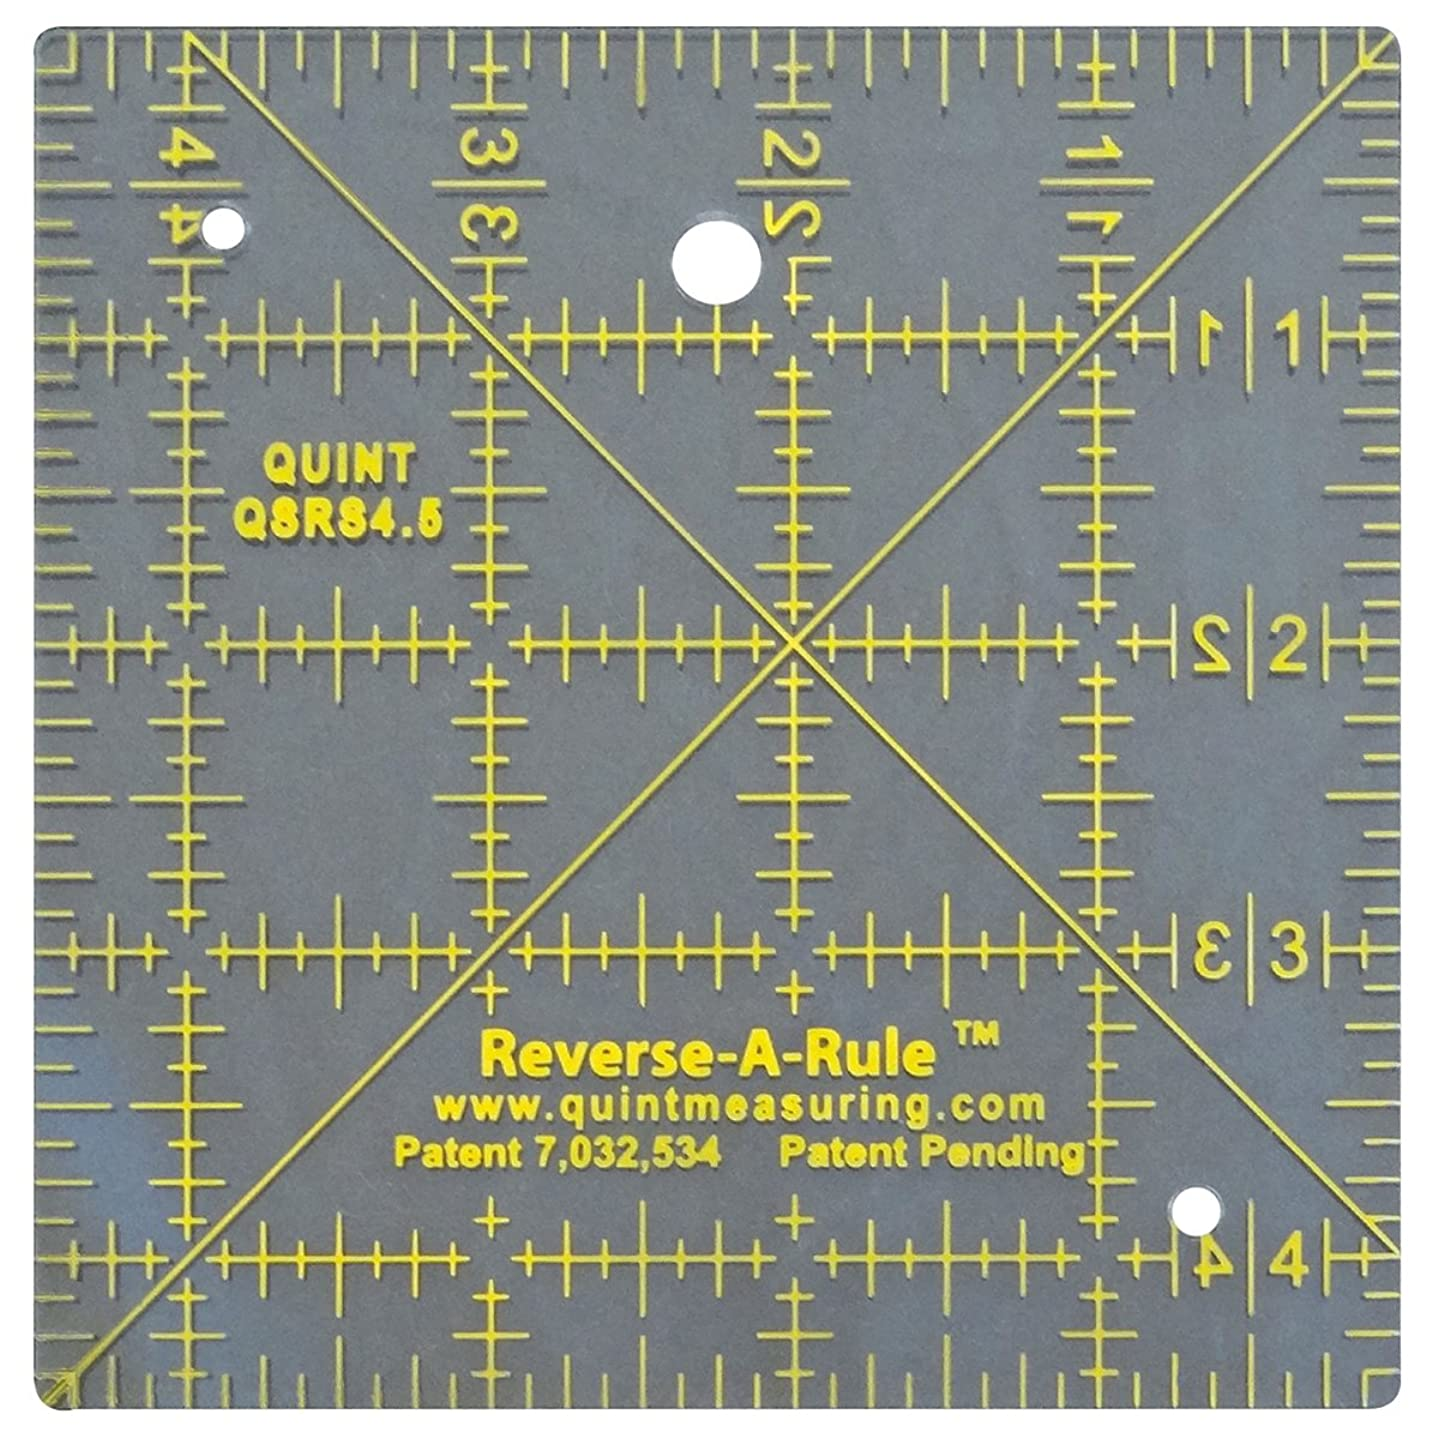 Quint Measuring Systems QSTD45 Reverse a Rule Standard Series Ruler, 4.5-Inch x 4.5-Inch